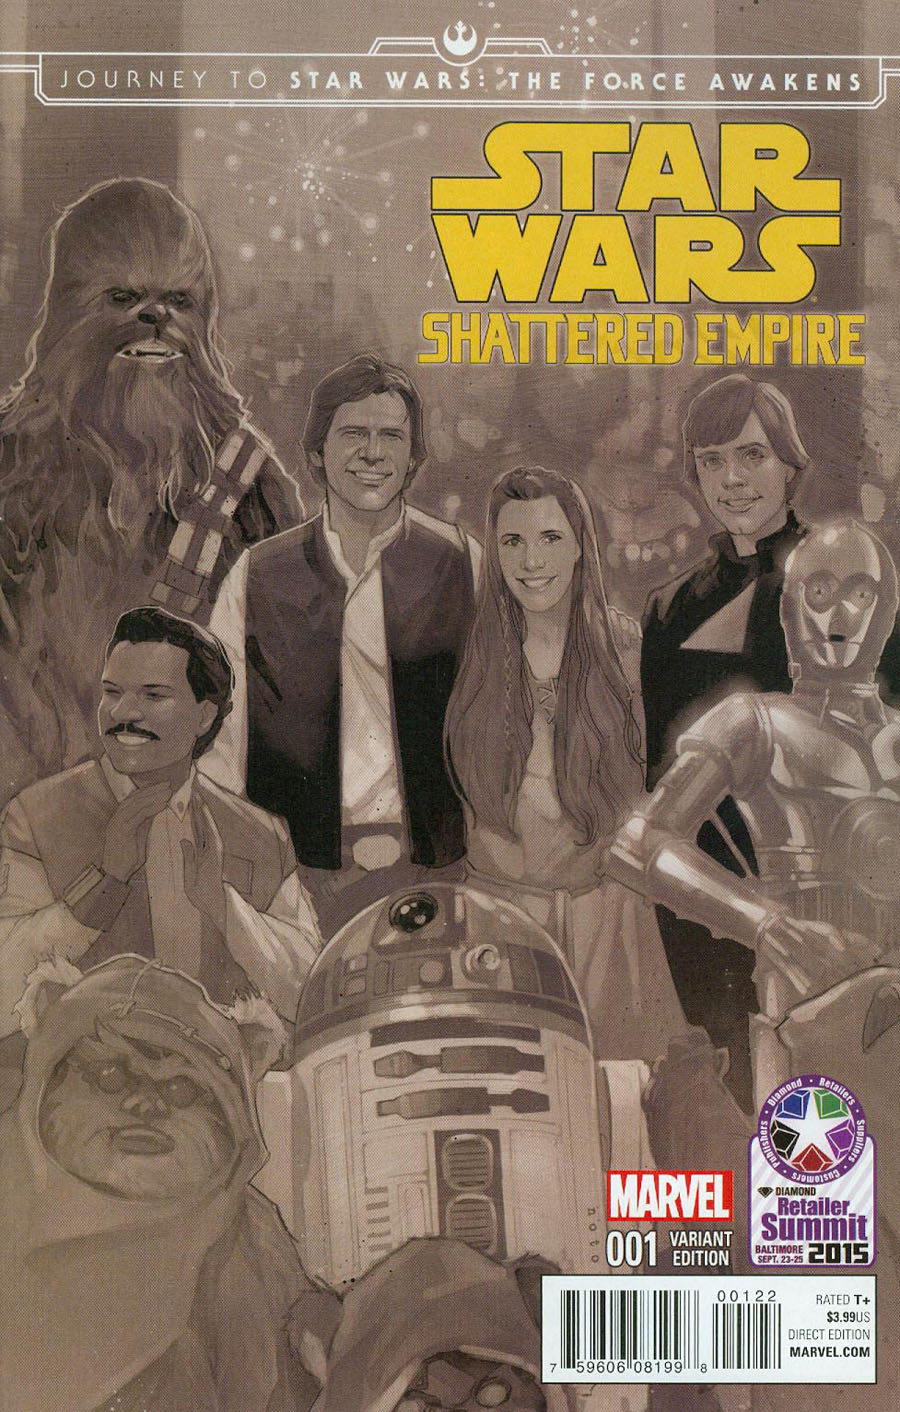 Journey To Star Wars Force Awakens Shattered Empire #1 Cover F Diamond Retailer Summit 2015 Variant Cover